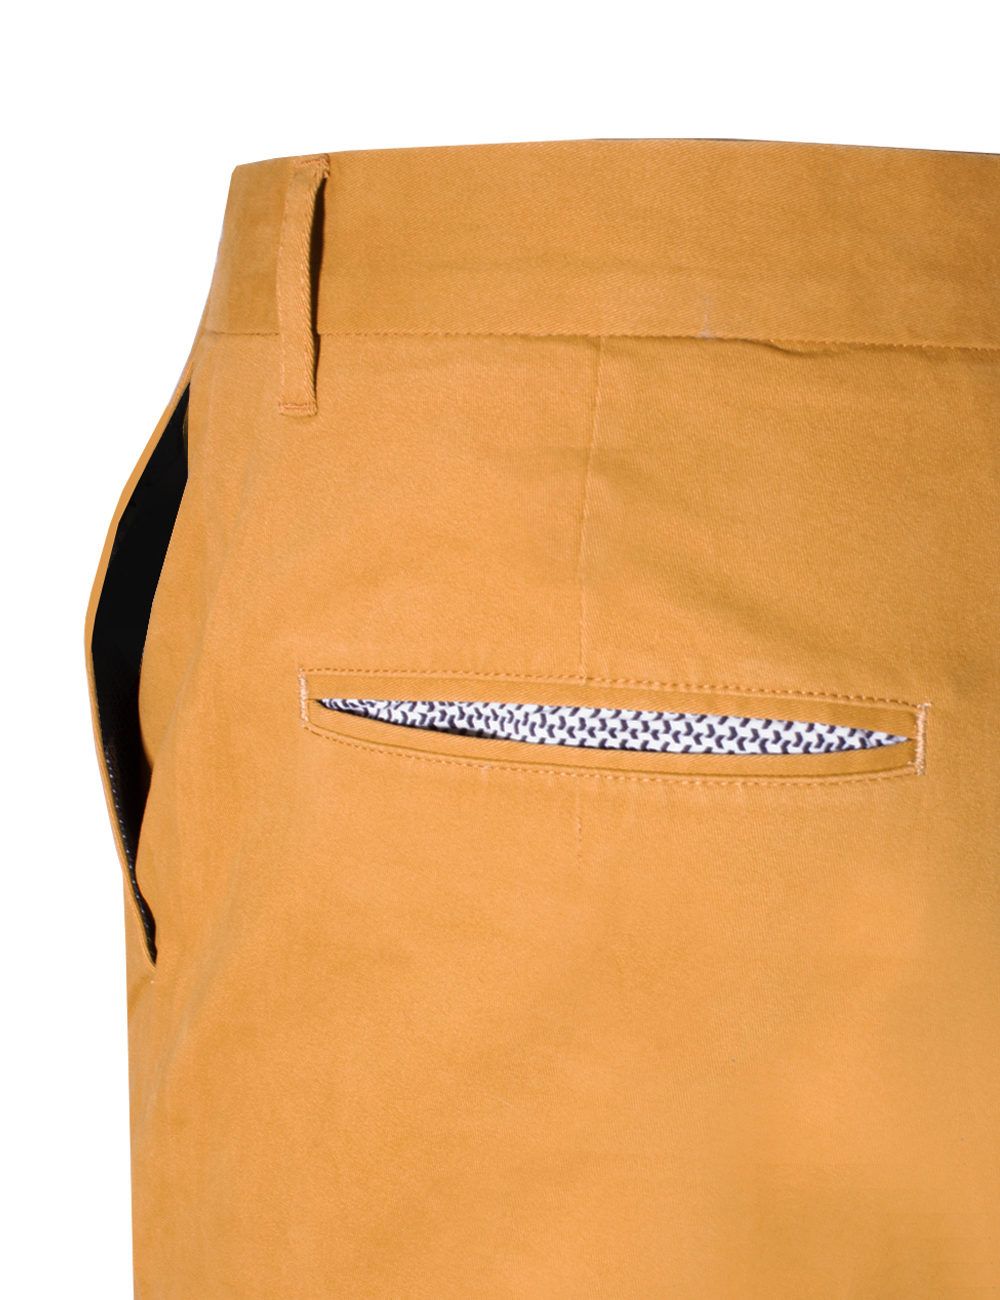 Slim Fit Bronze Casual Pants CPSFA7.2